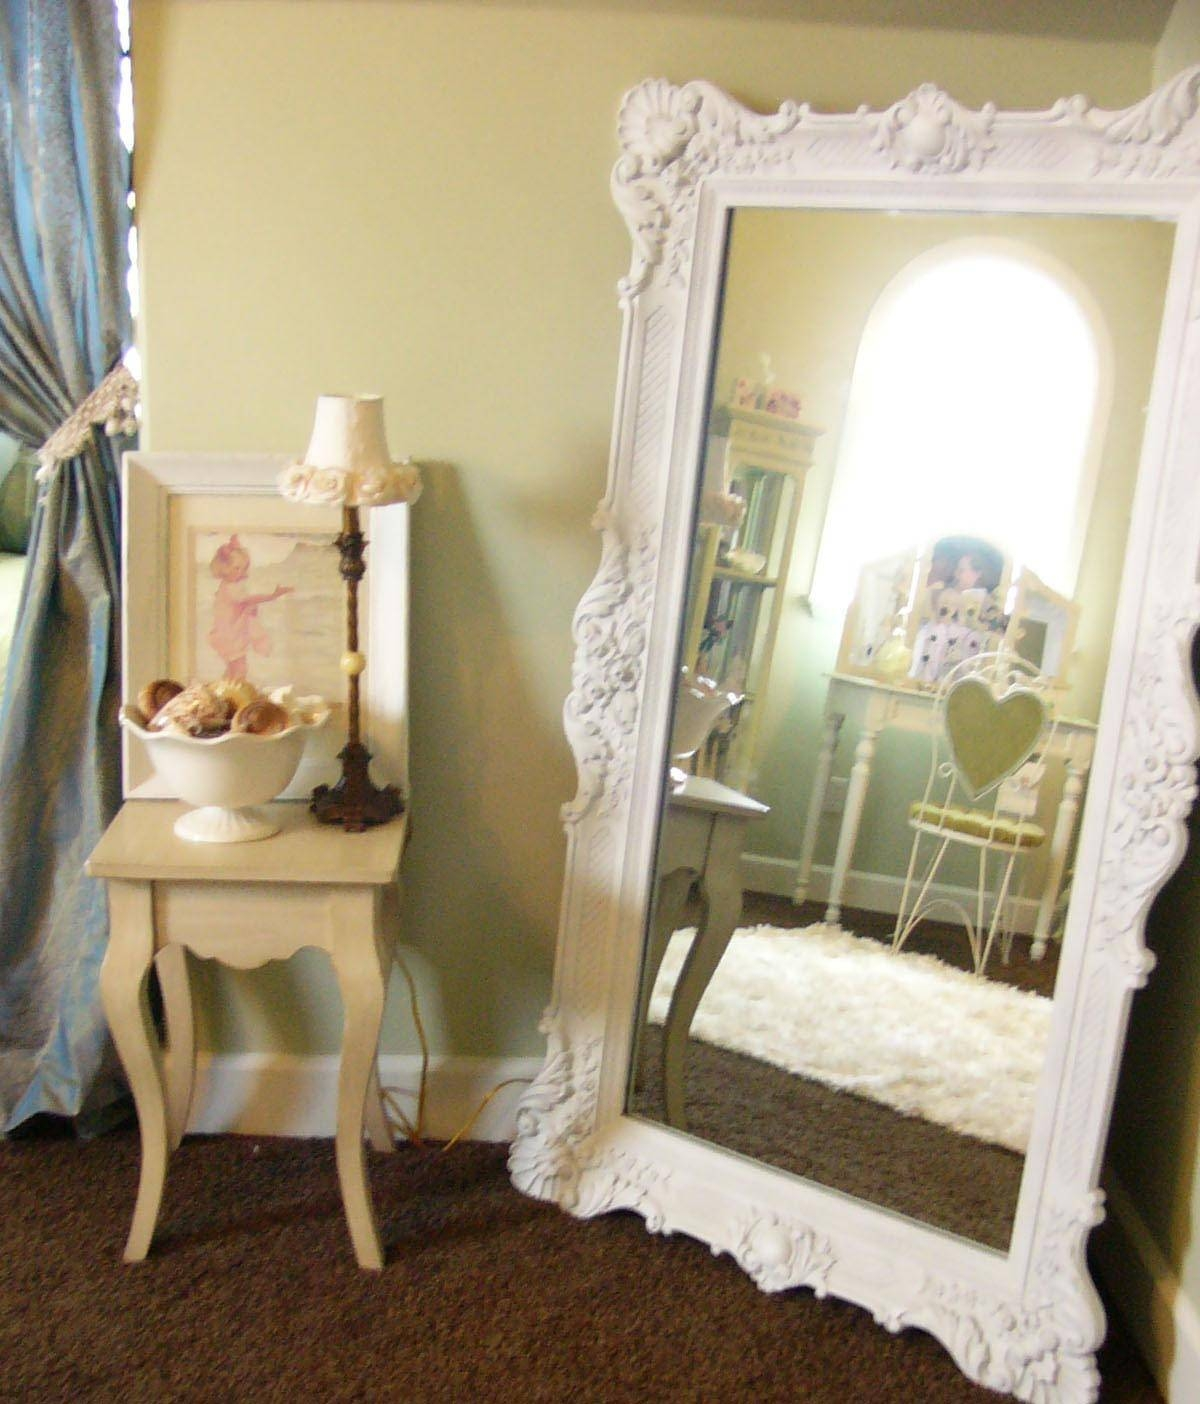 Tips For Decorating With Floor Length Mirrors | Best Decor Things with Decorative Full Length Mirrors (Image 23 of 25)